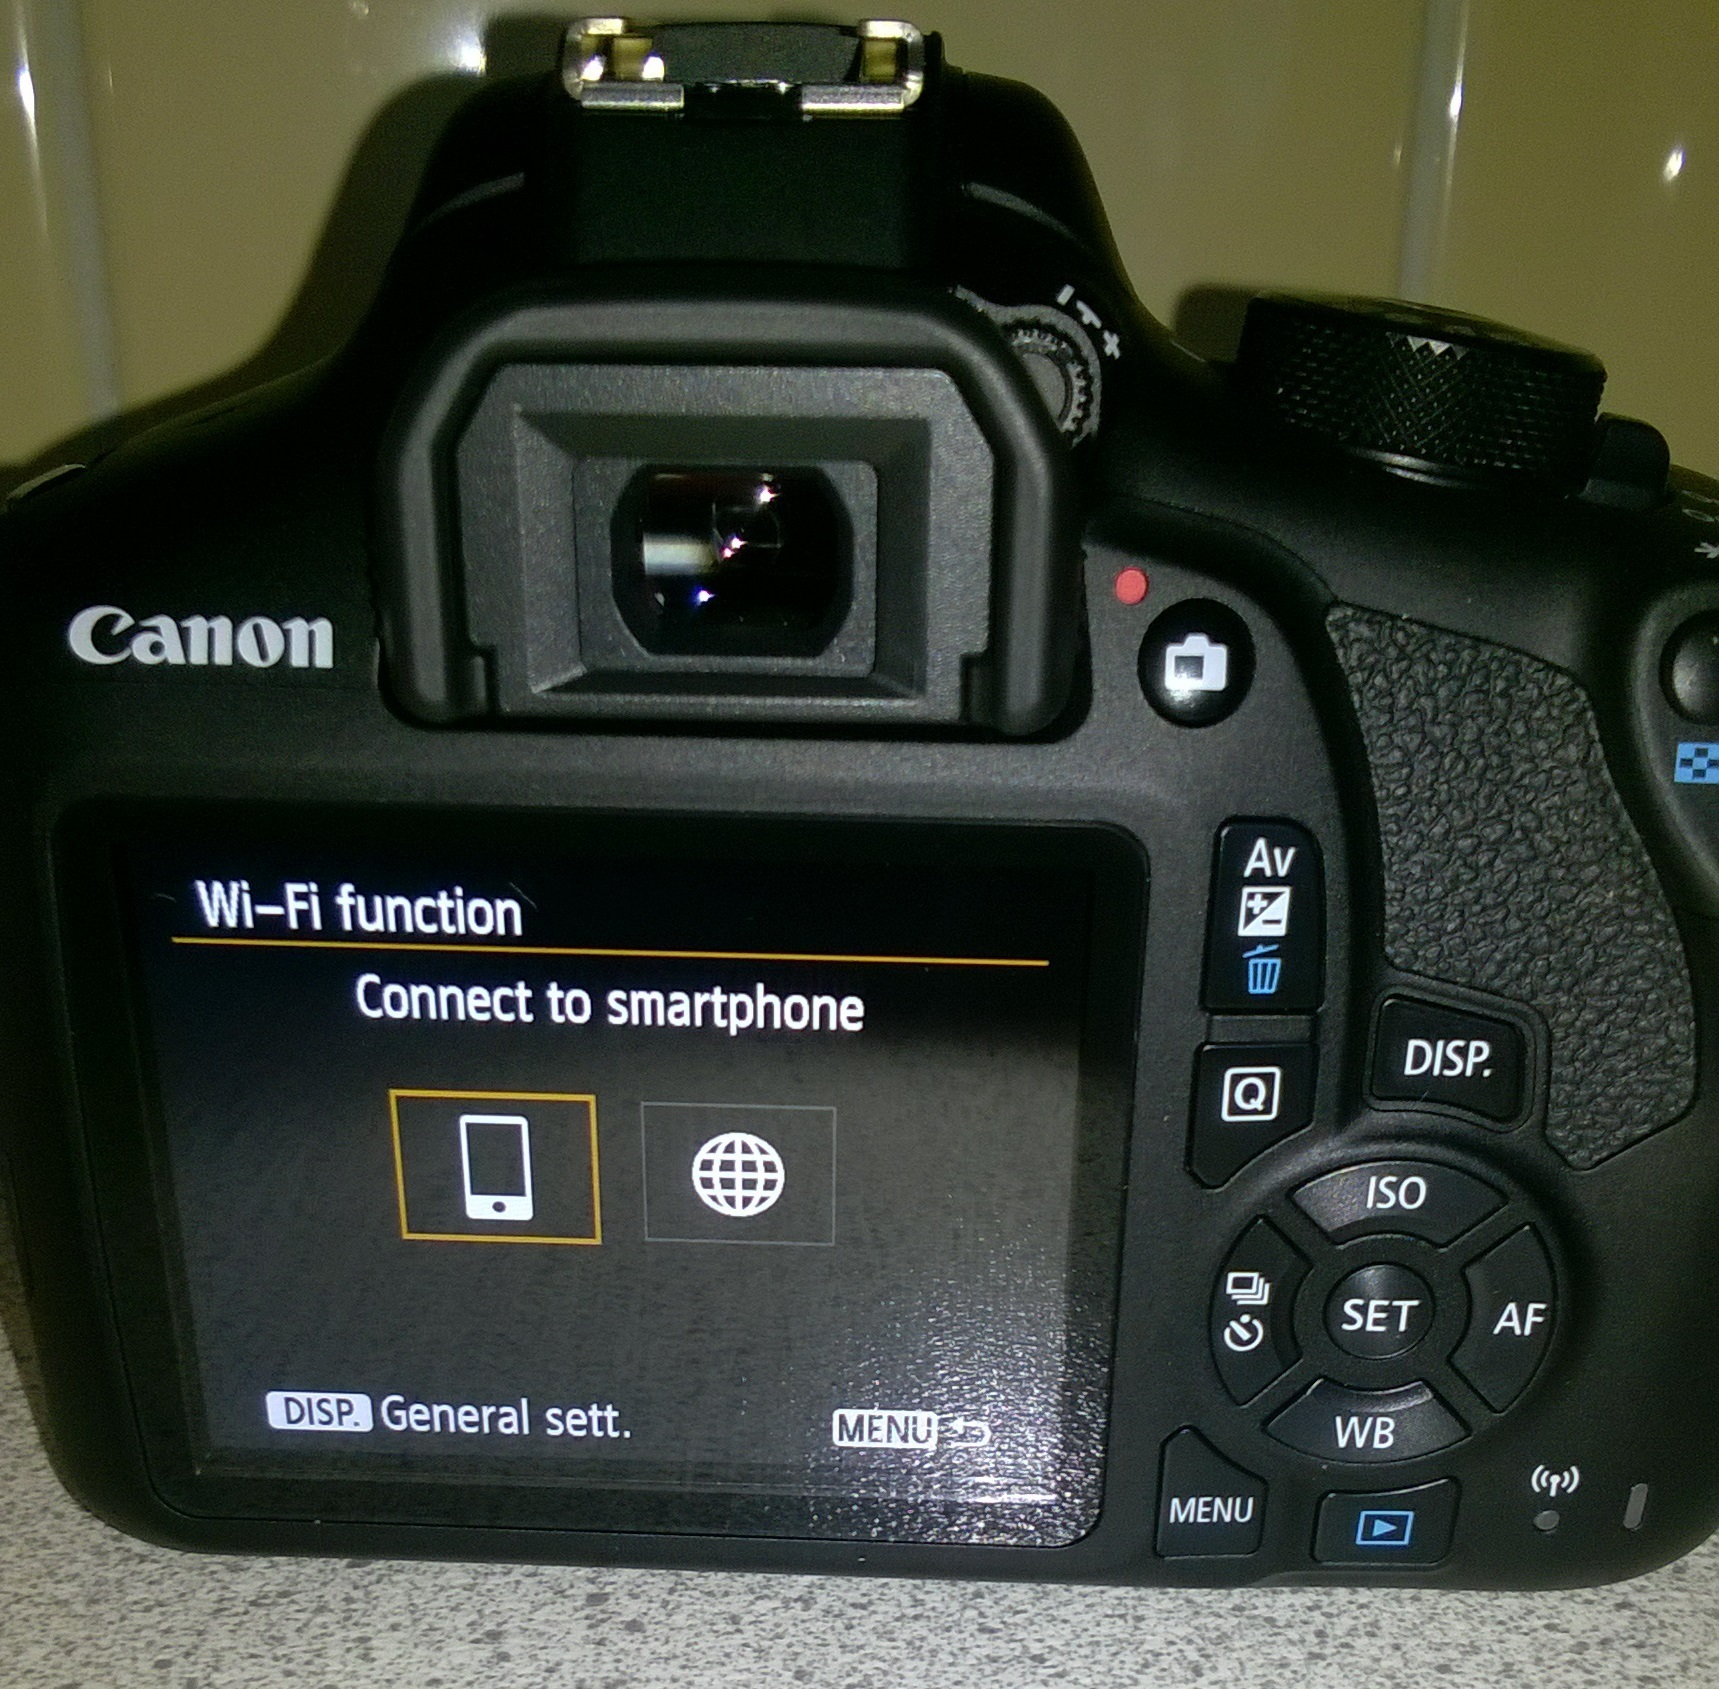 how to connect remote to canon rebel t6 1300d